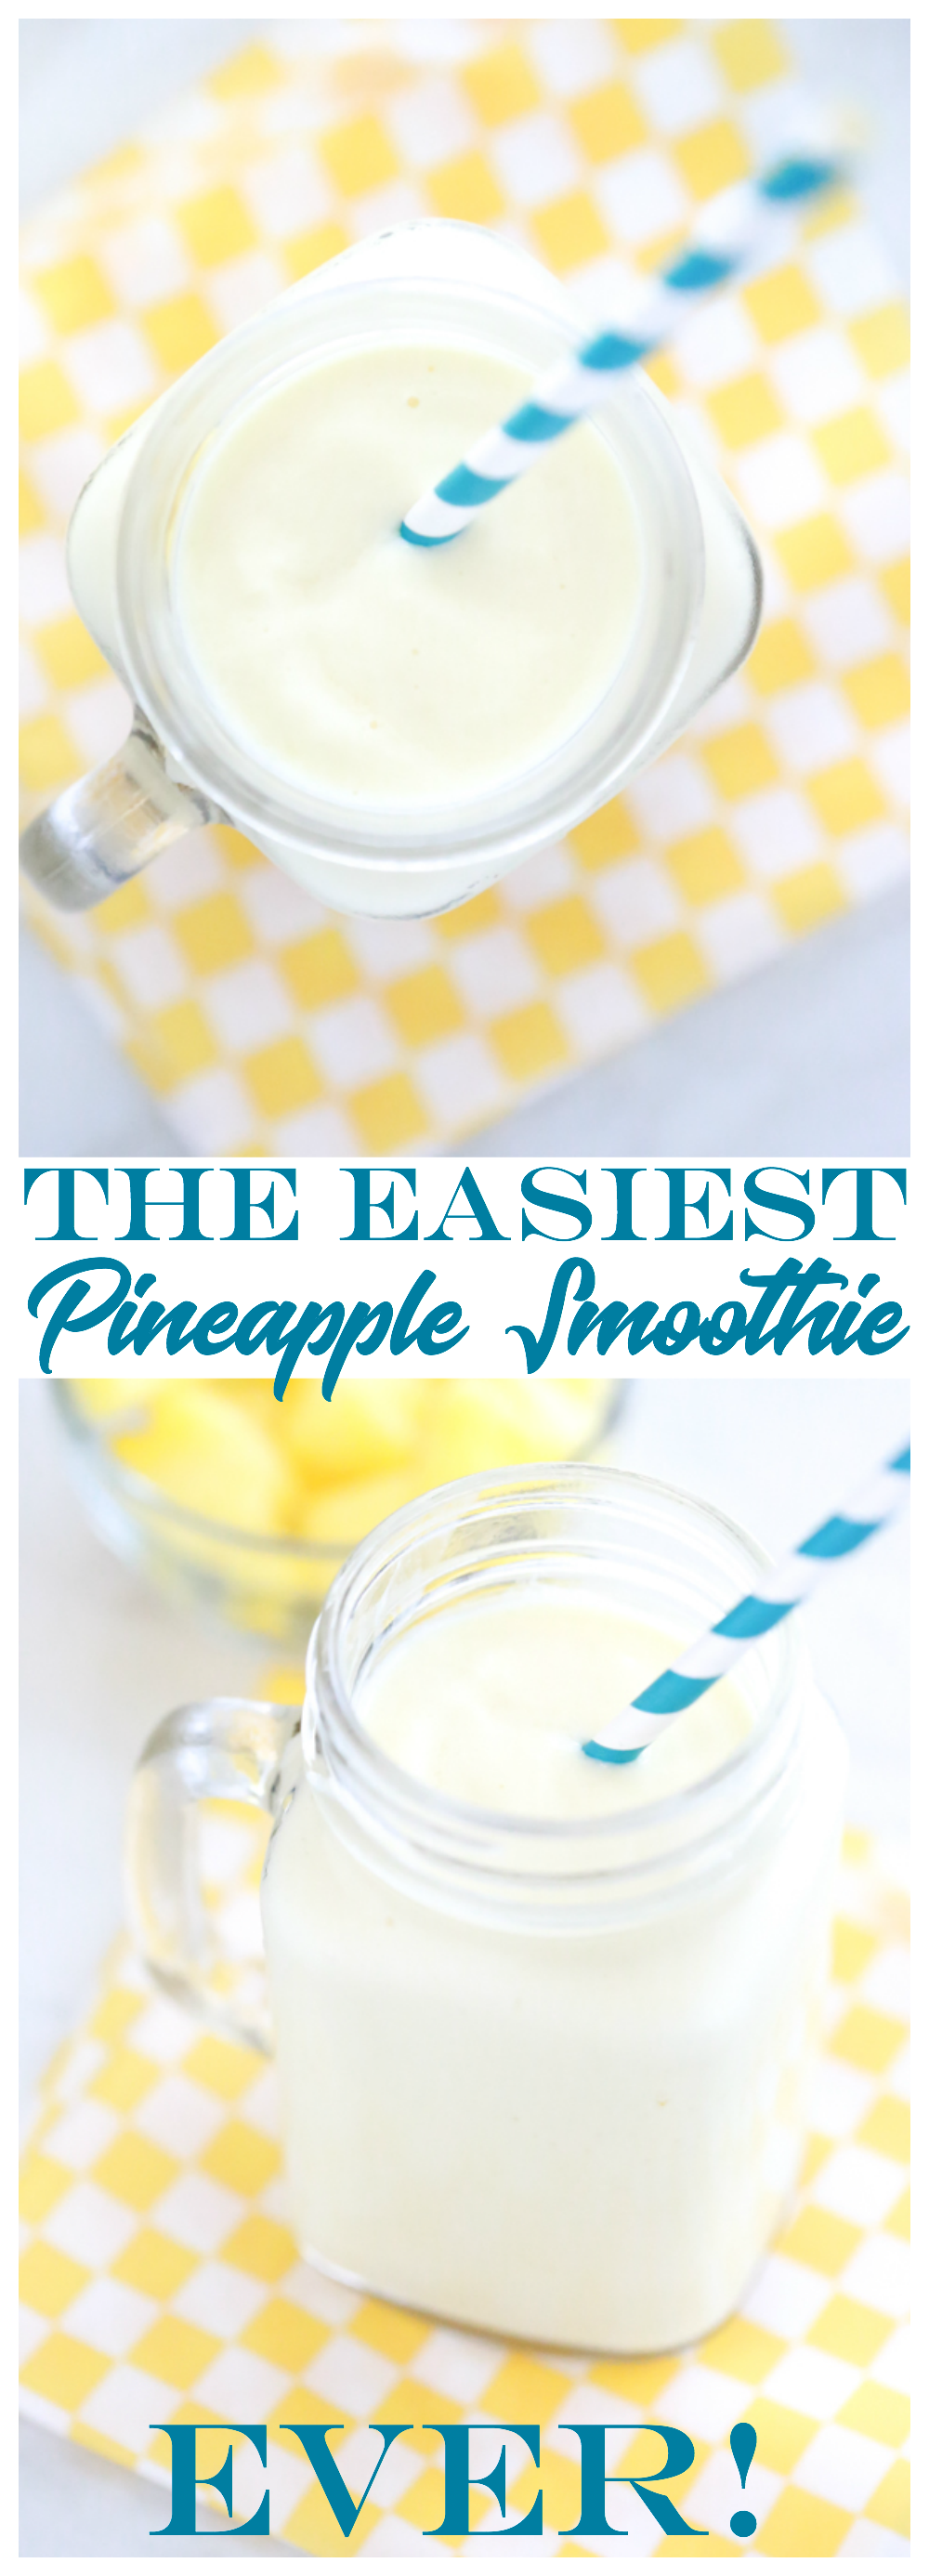 You can make the Easiest Pineapple Smoothie ever using just two simple ingredients. The best part, it tastes GREAT!